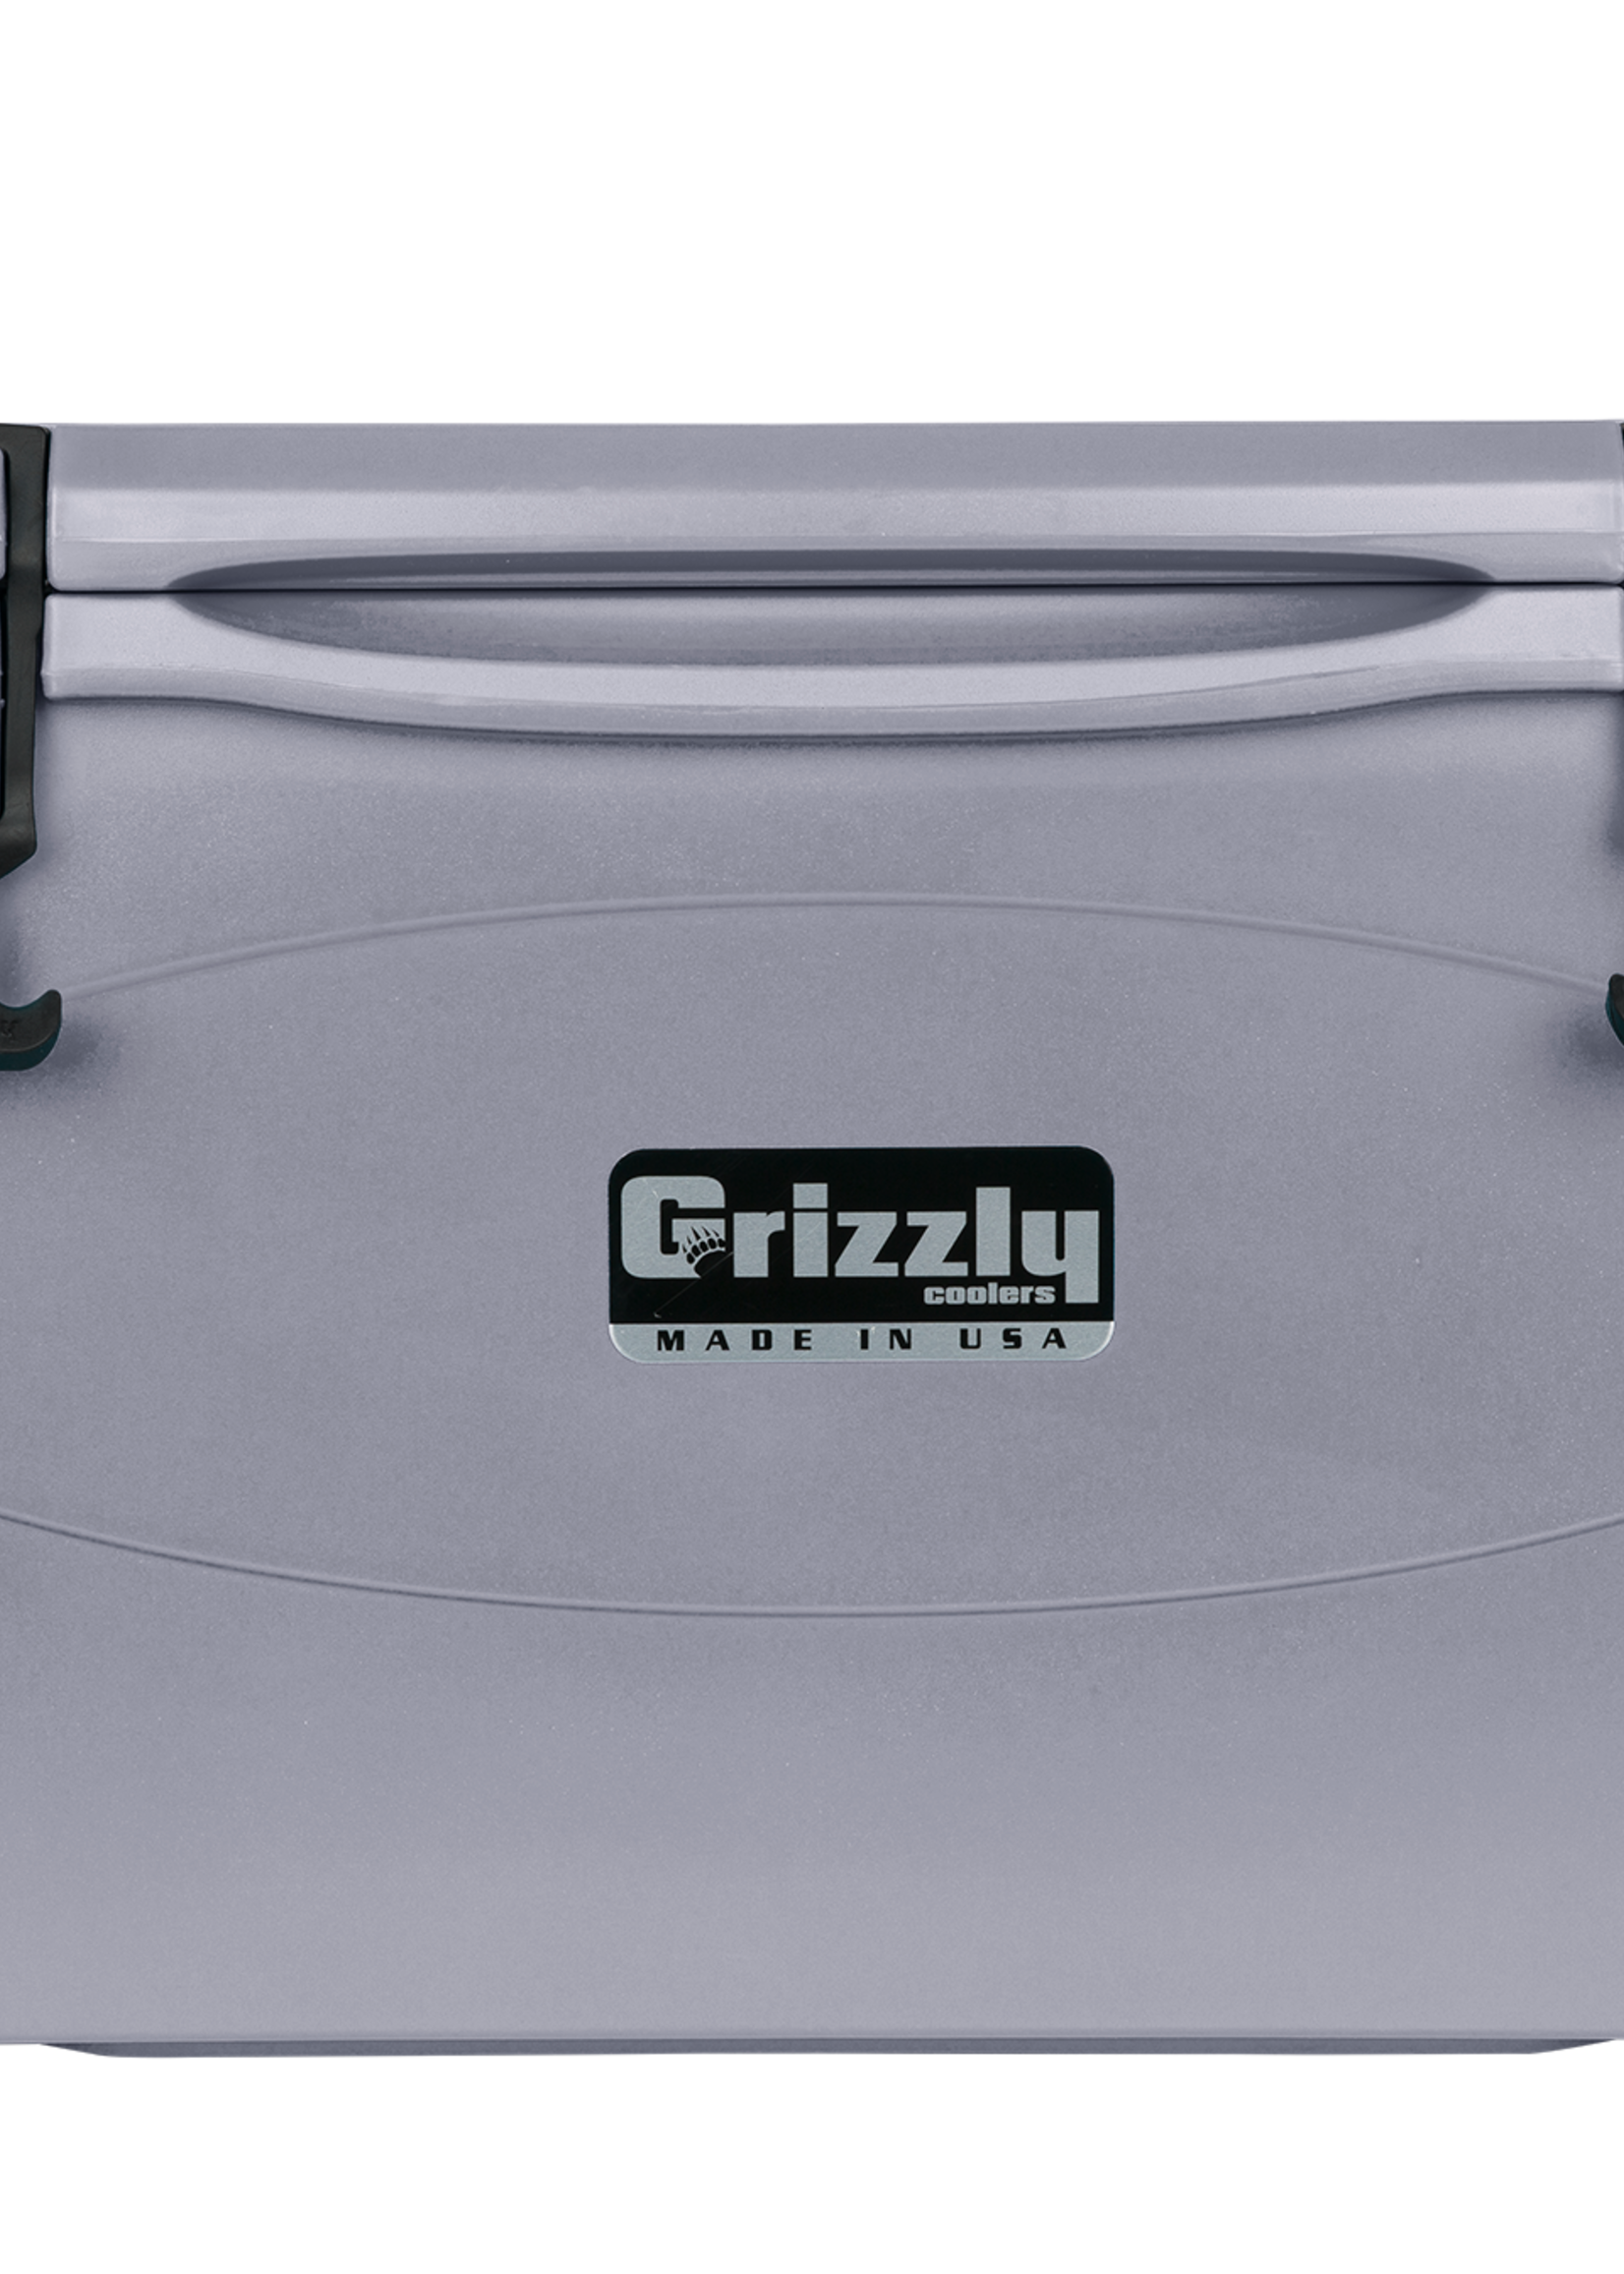 Grizzly Coolers Grizzly 60 Cooler